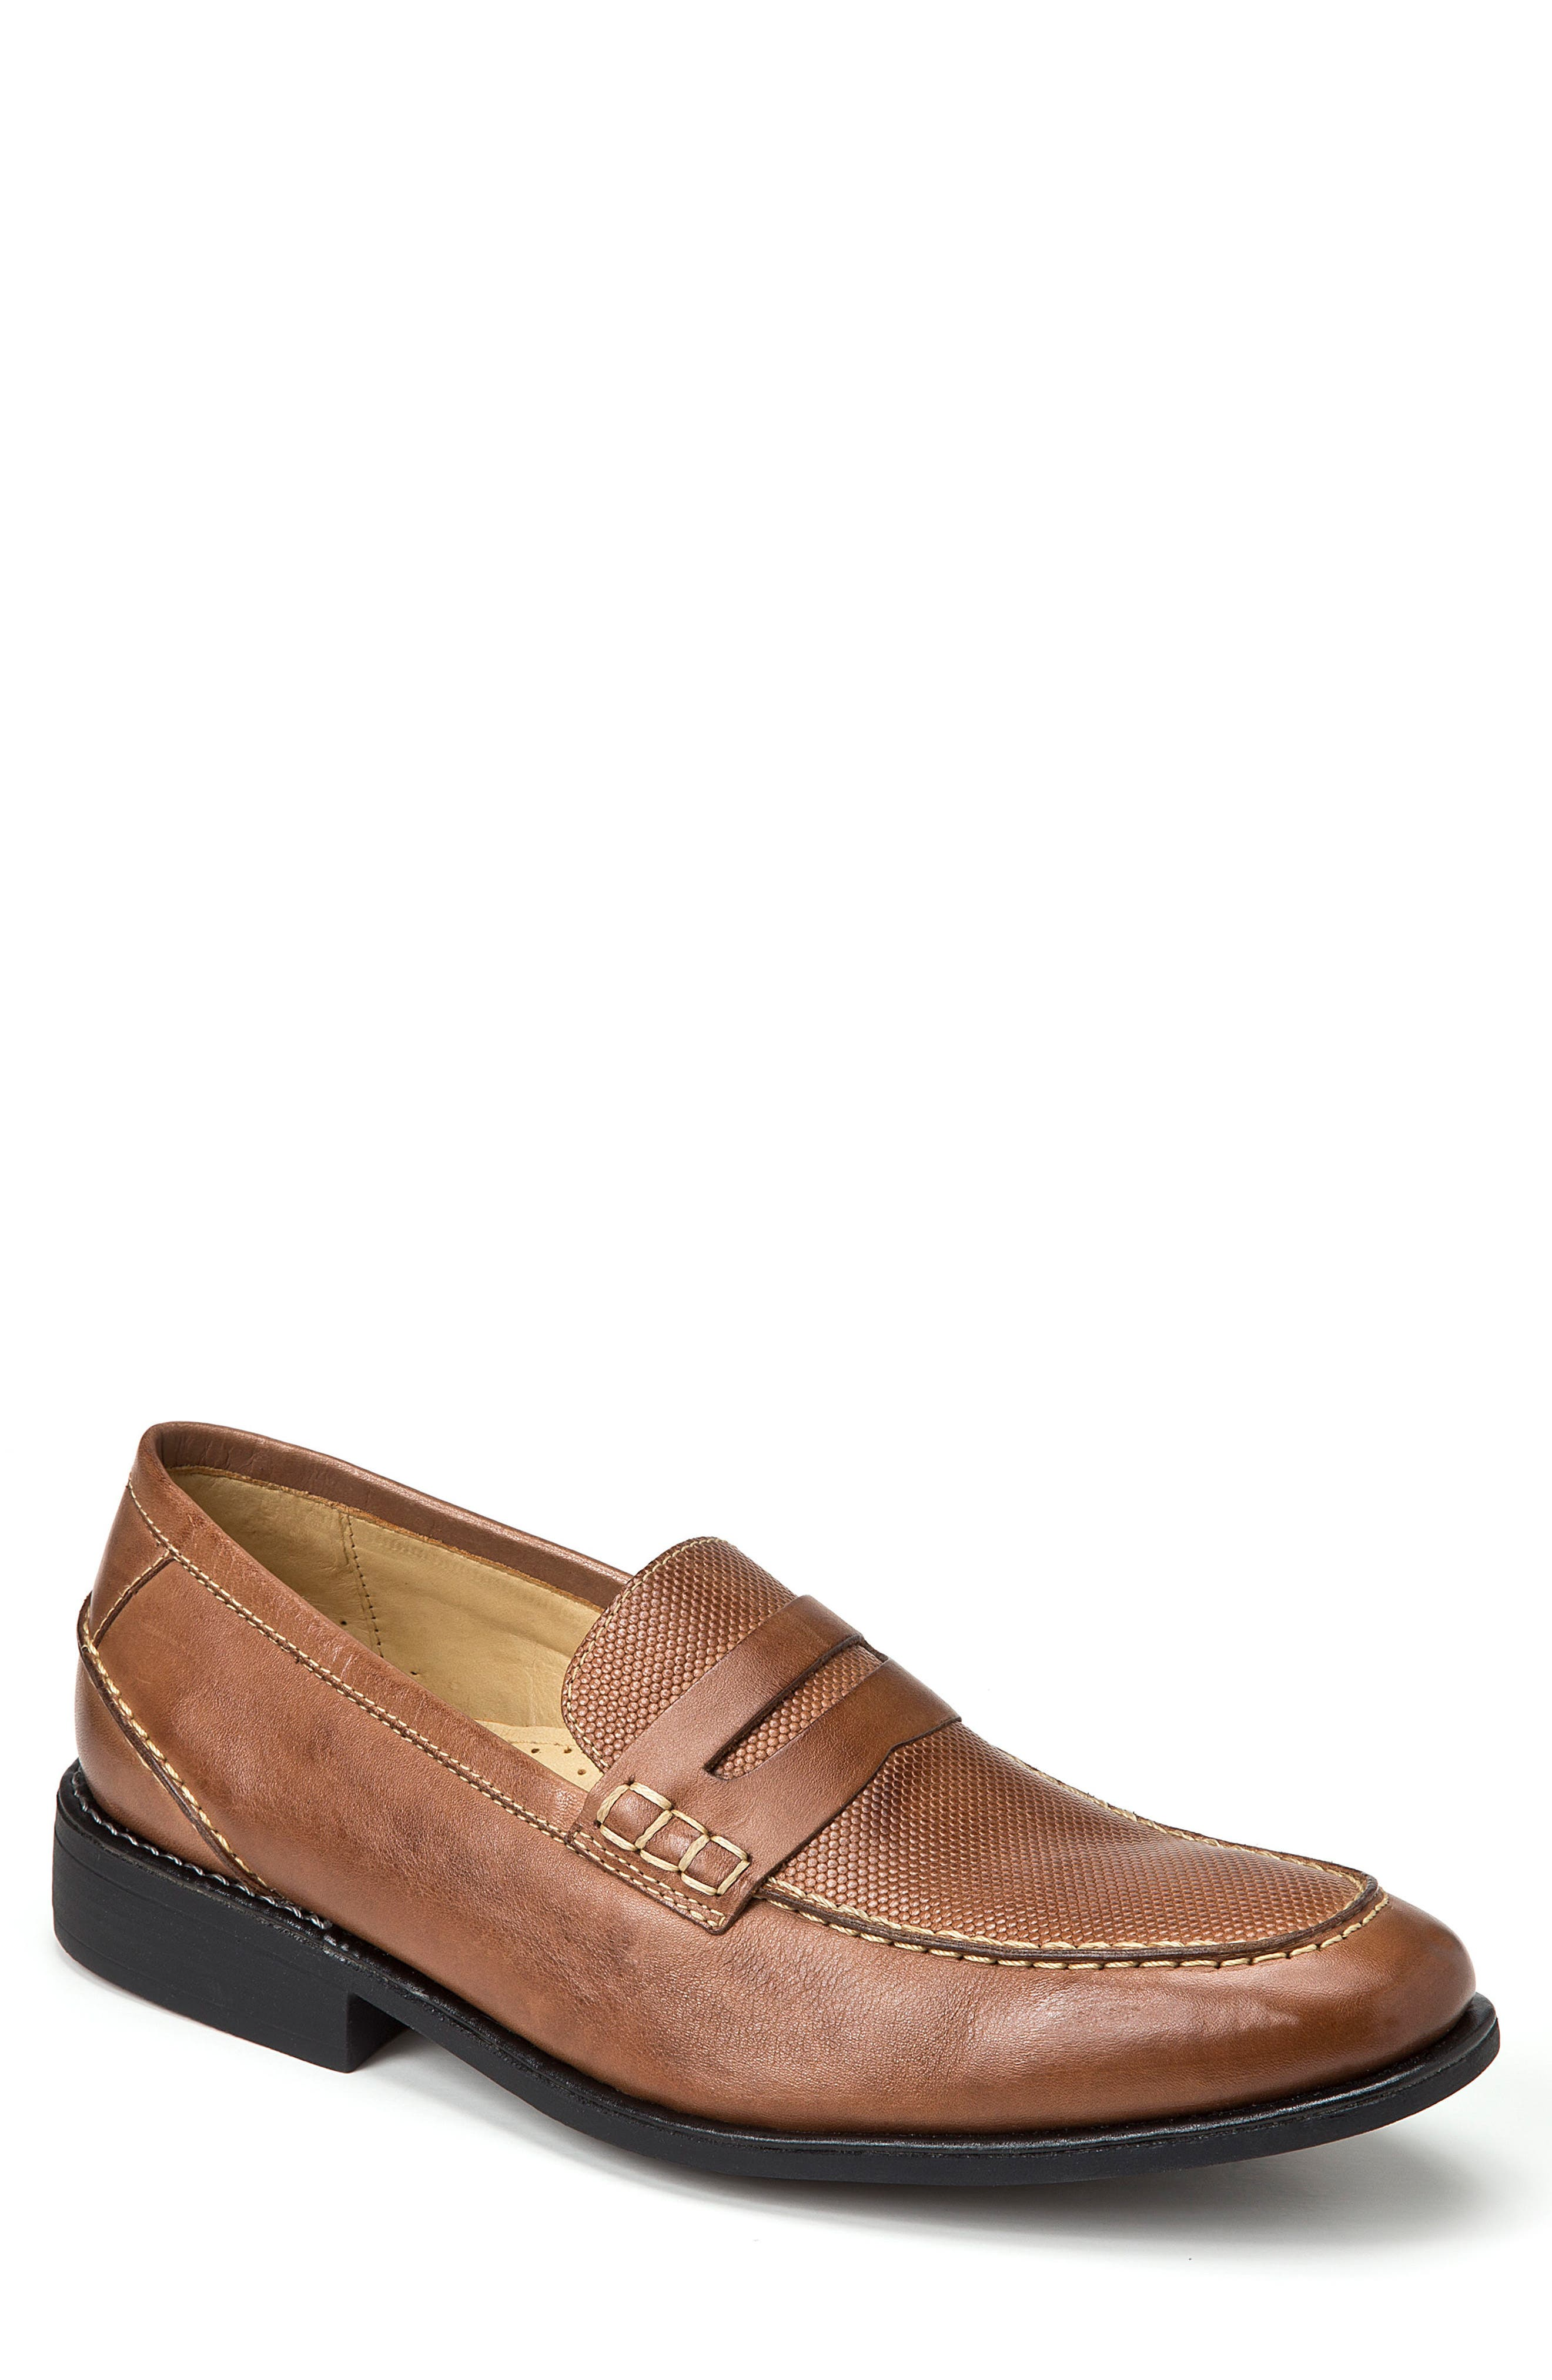 SANDRO MOSCOLONI Rick Penny Loafer